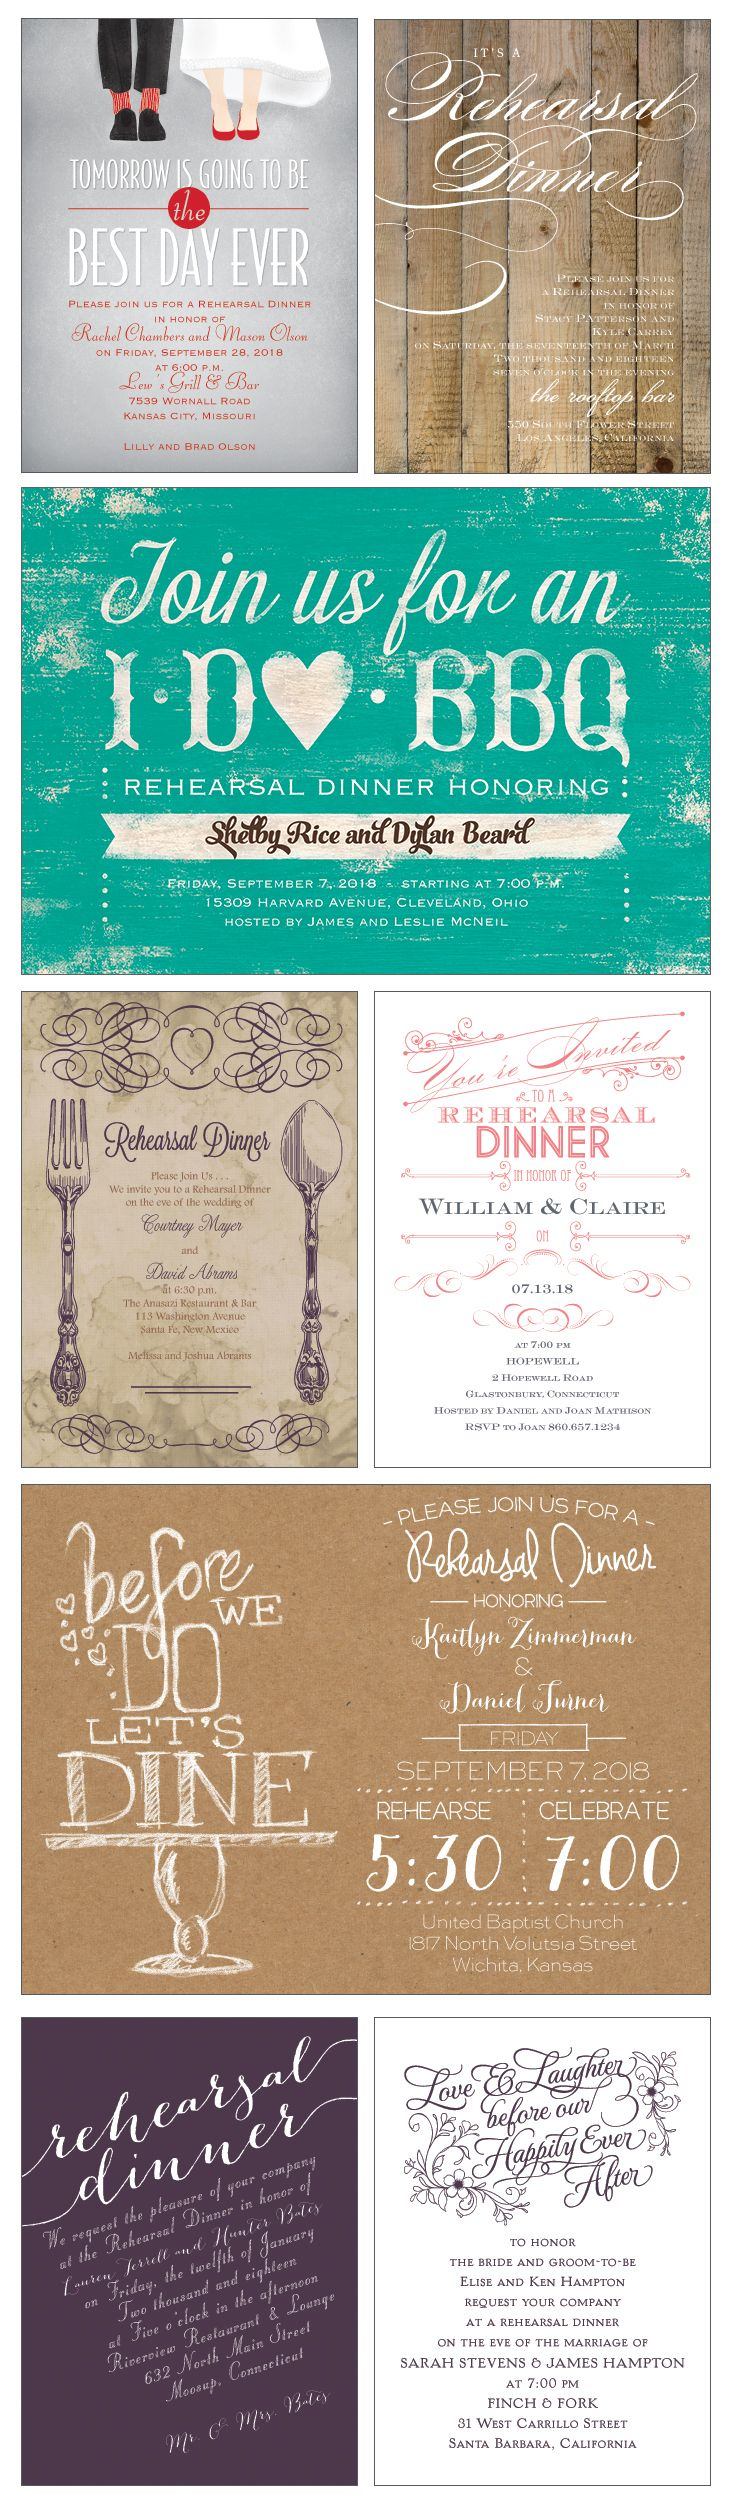 Celebrate the day BEFORE the best day ever with a Rehearsal Dinner invite personalized in your theme and colors.